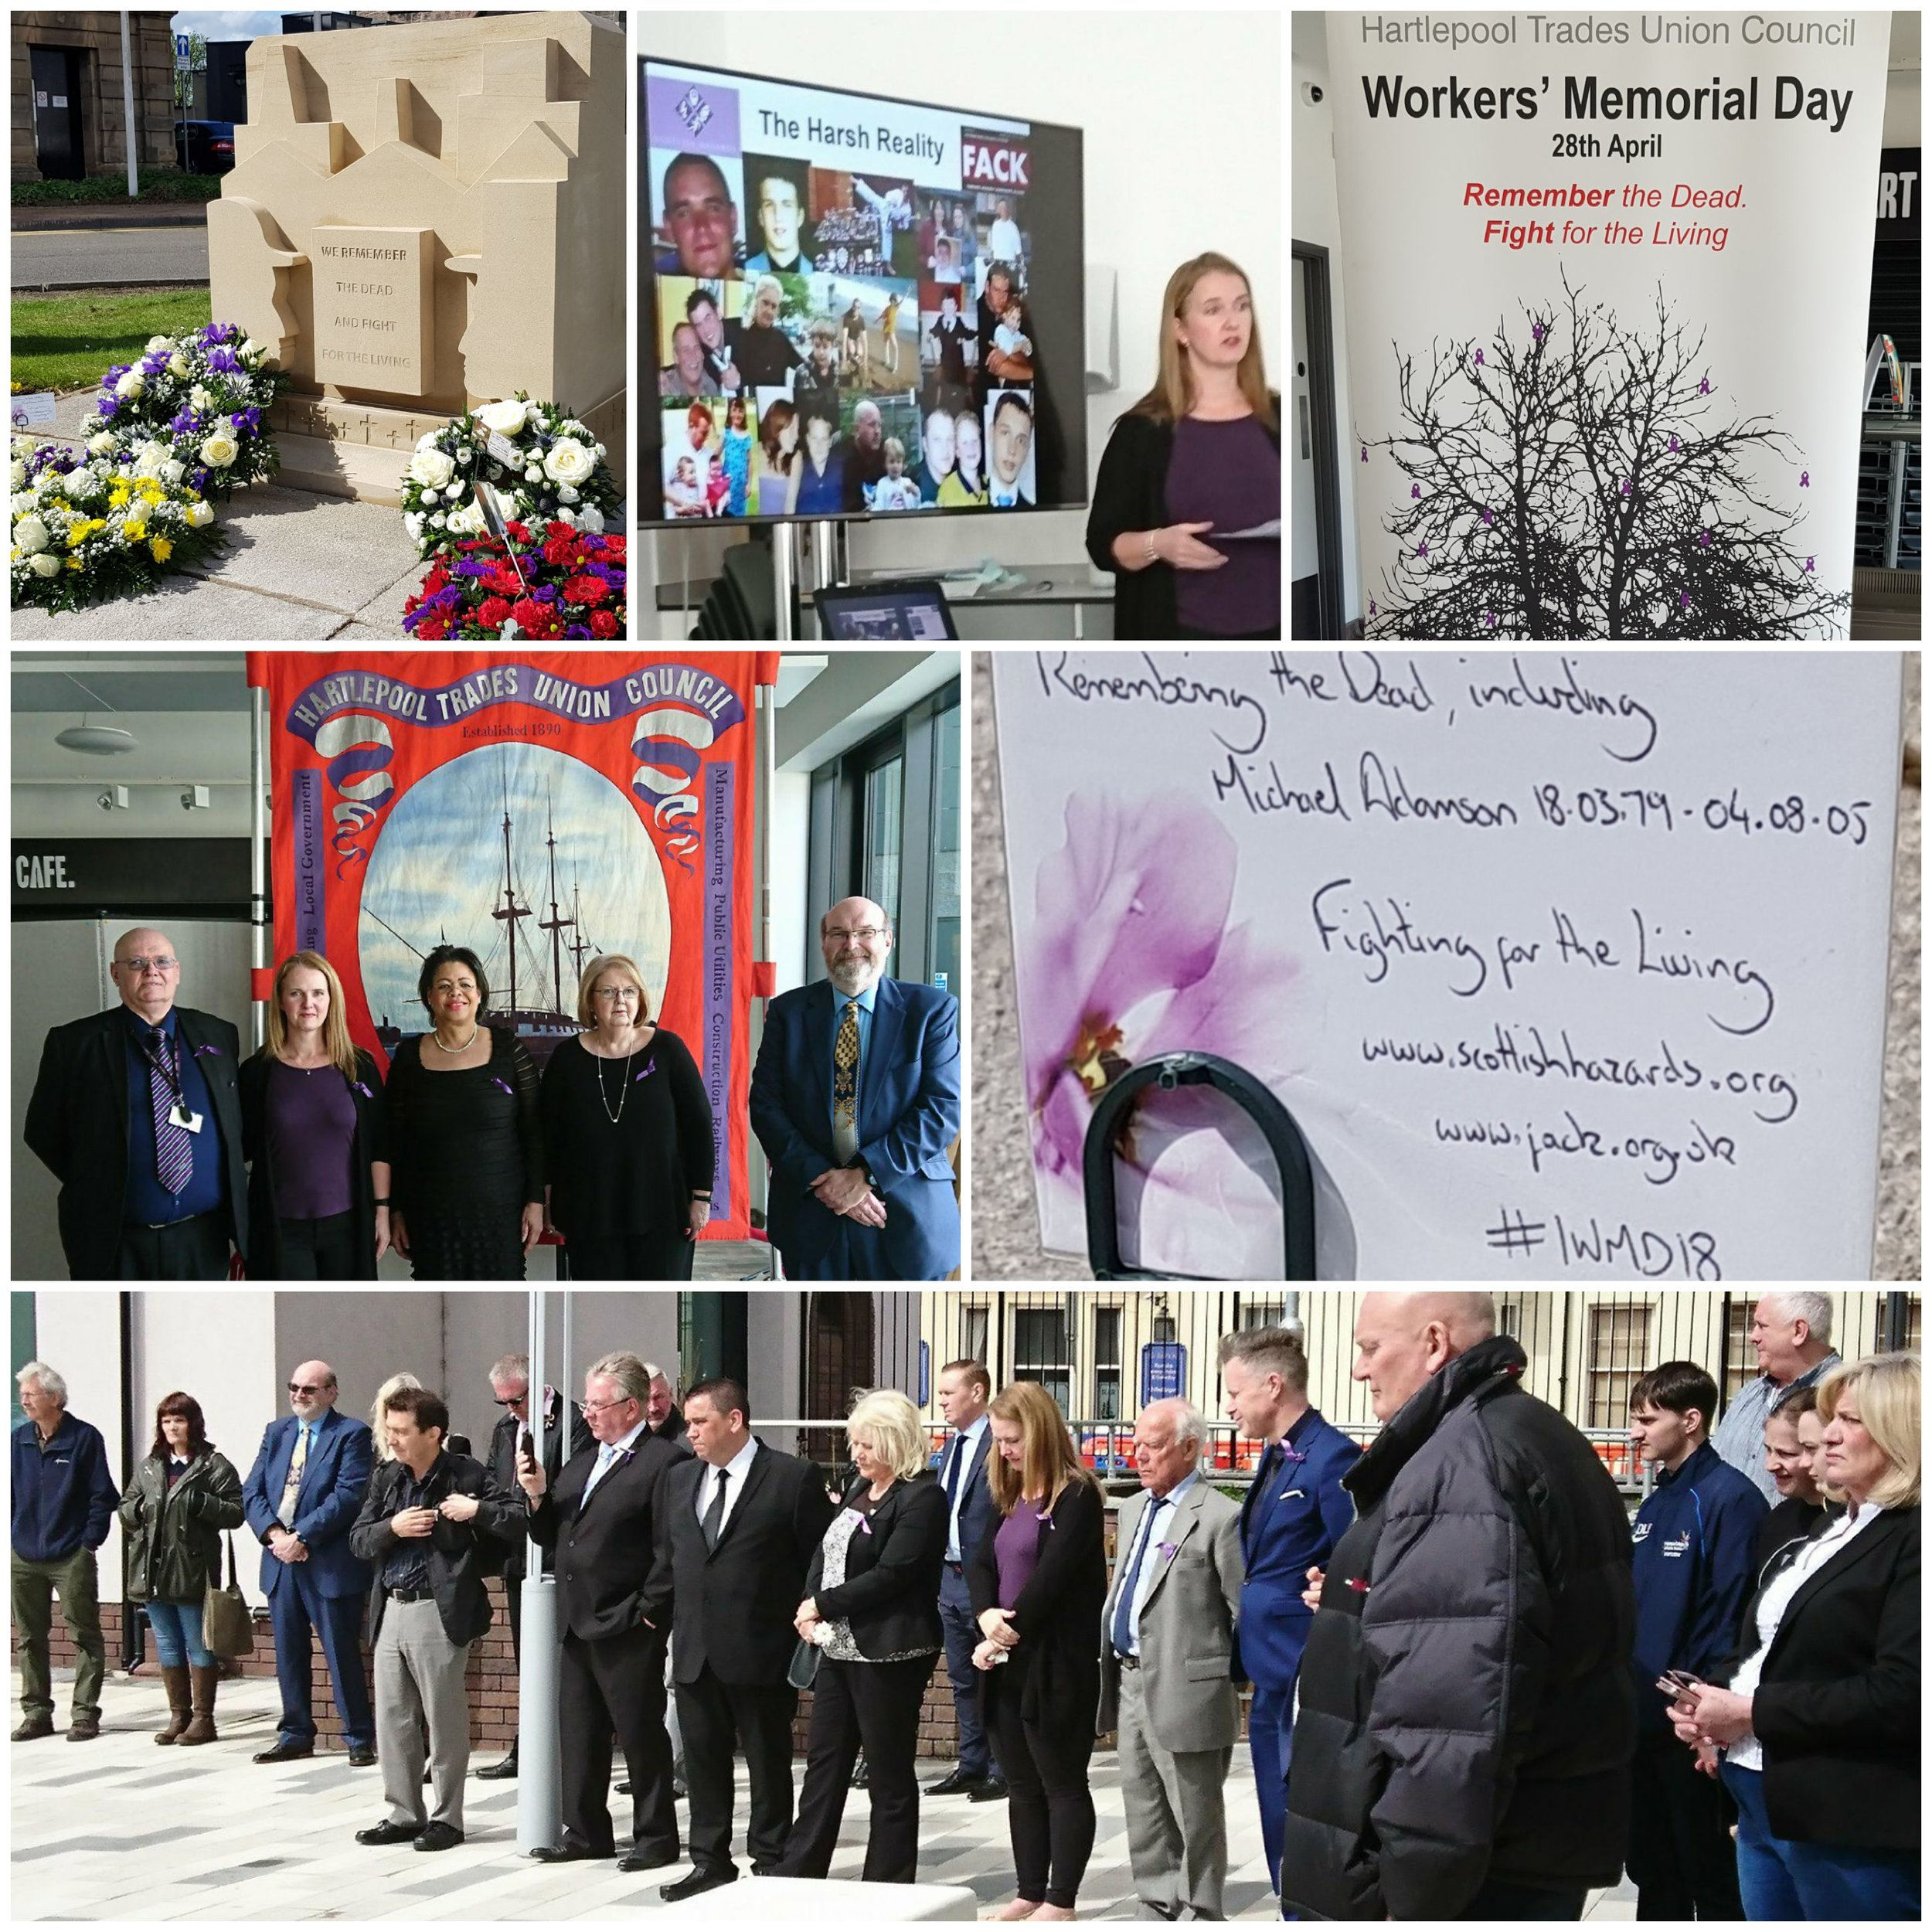 International Workers' Memorial Day event: Hartlepool 2018